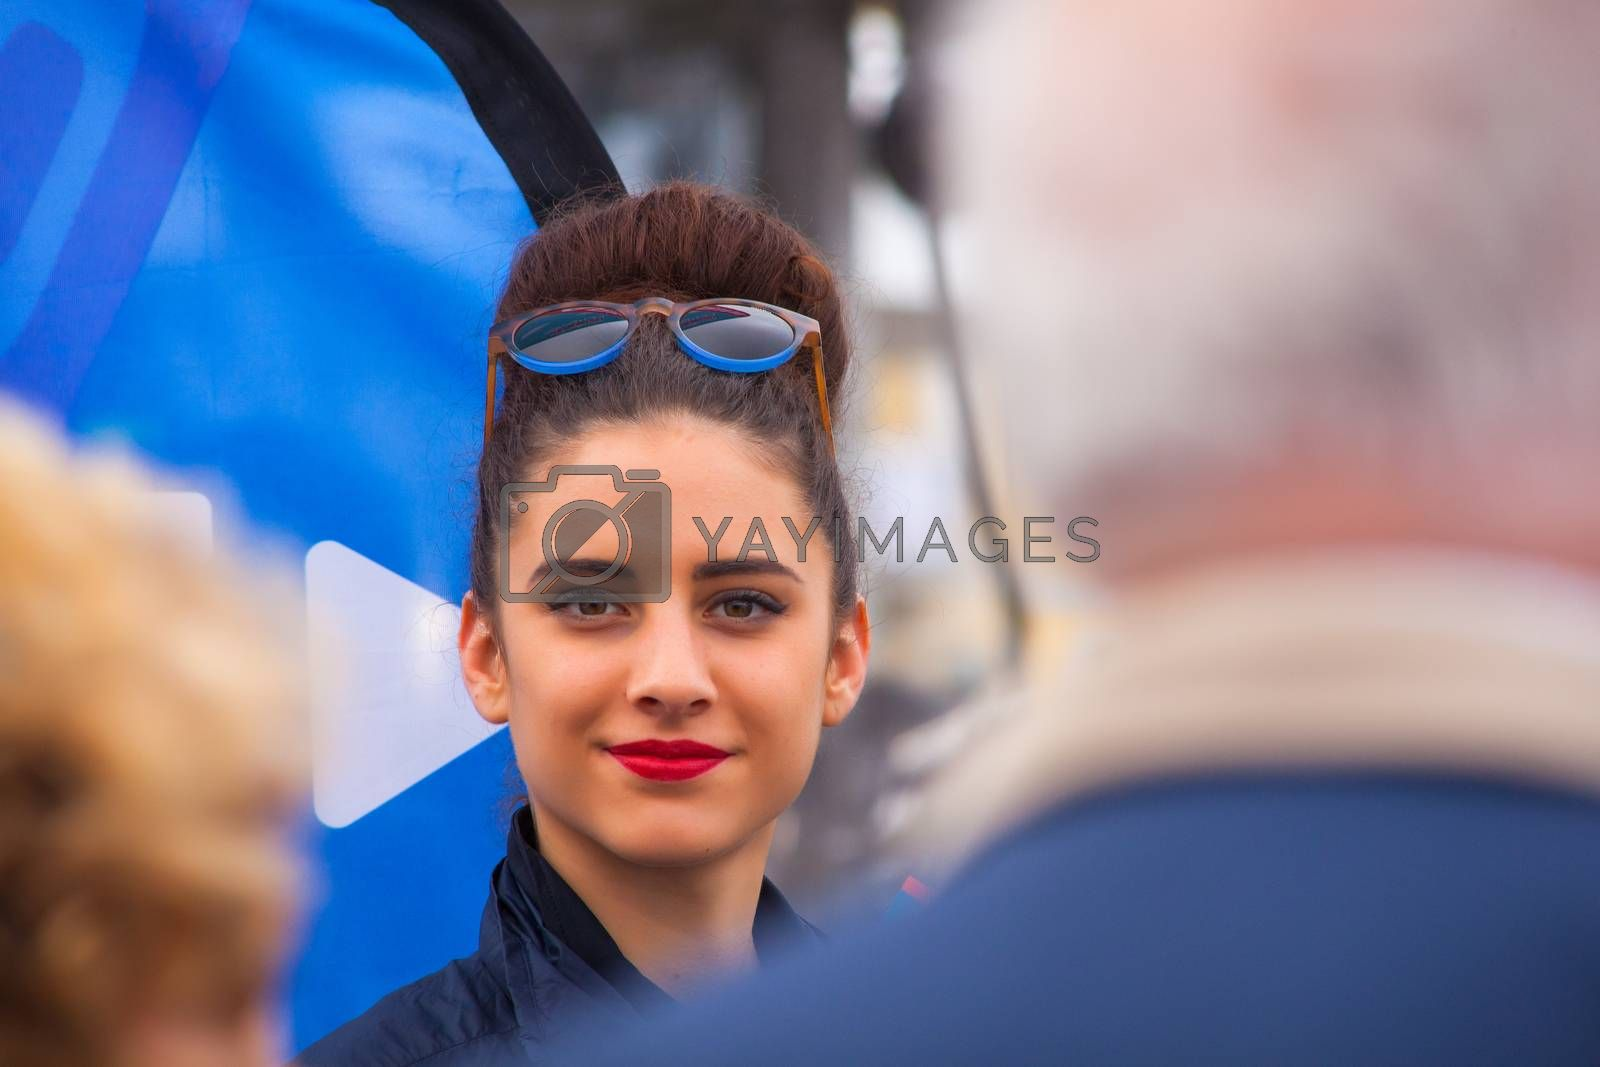 TRIESTE, ITALY - OCTOBER, 10: Beauty italian girl with glasses on head on October 10, 2014